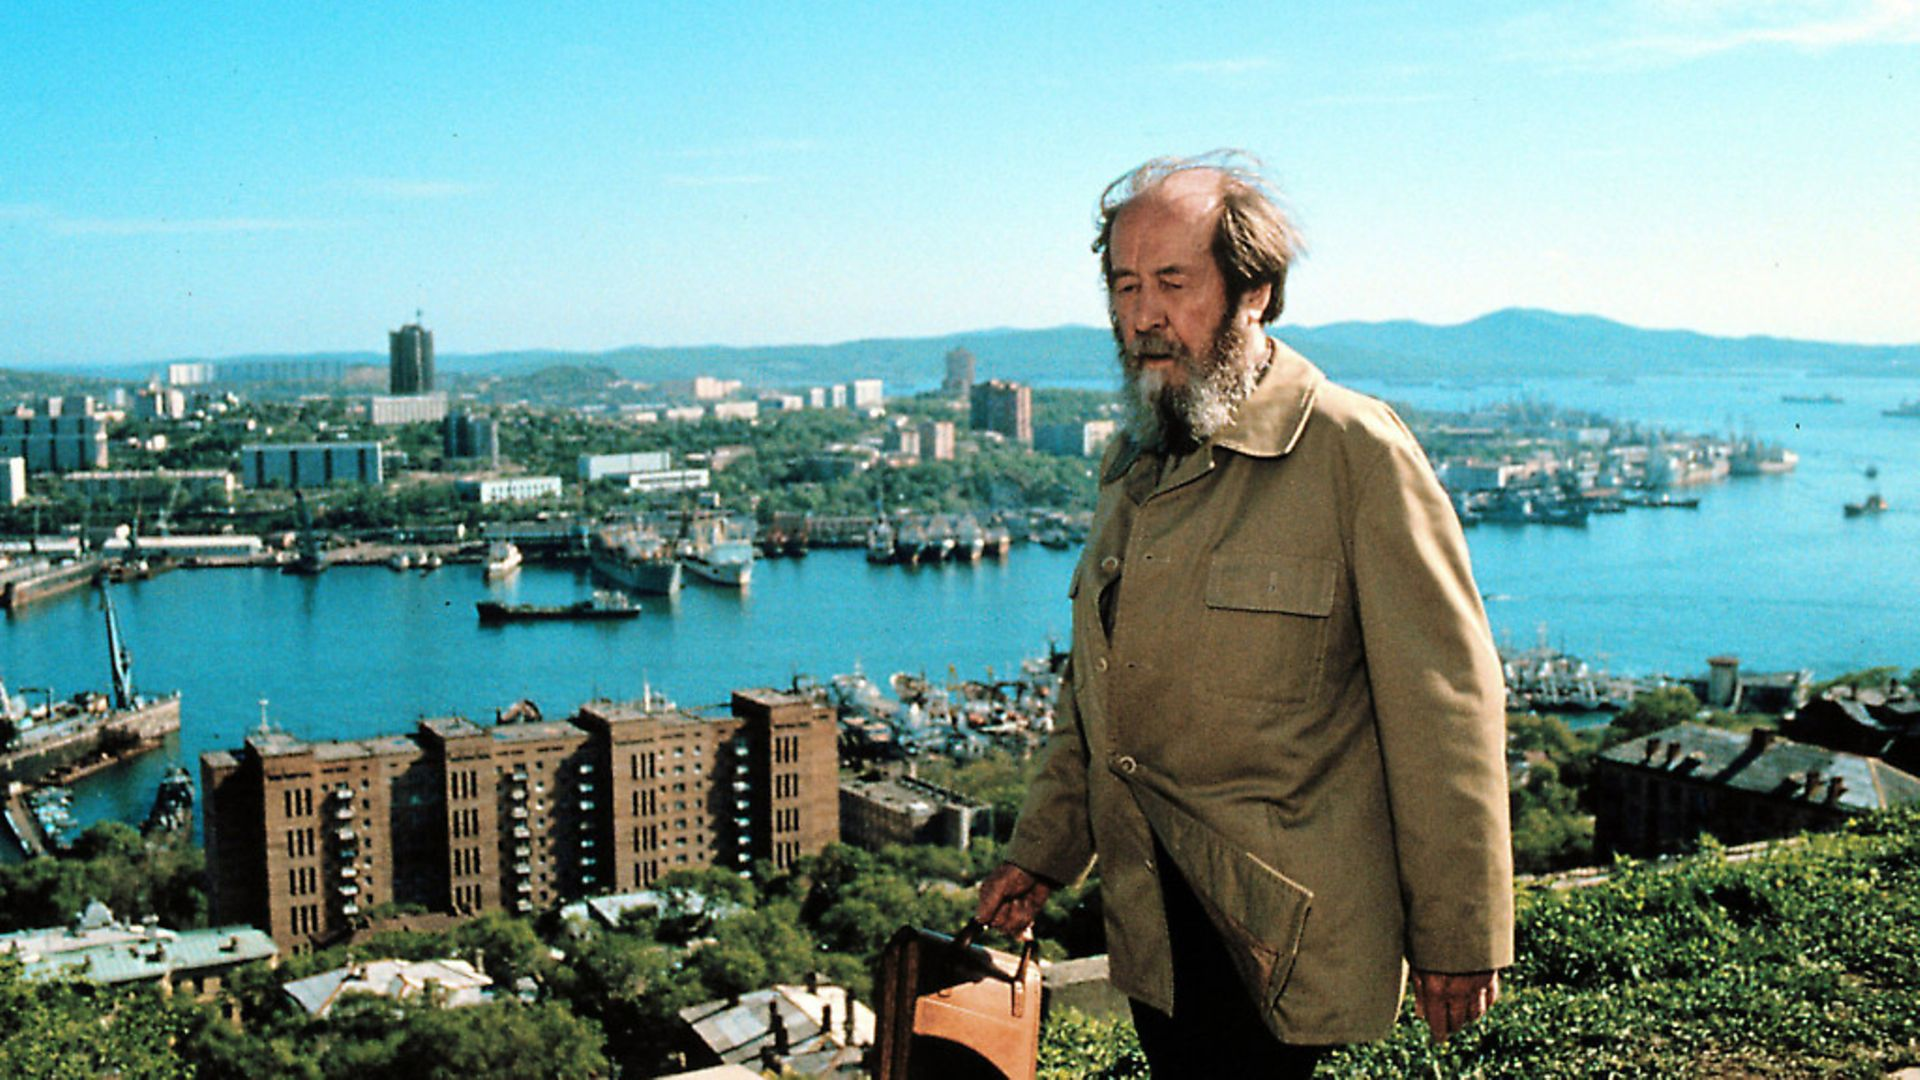 Alexander Solzhenitsyn poses during his journey through Siberia upon his return from the USA on May 30, 1994  in Vladivostock, Siberia, Russia. Photo: Laski Collection/Getty Images - Credit: Getty Images